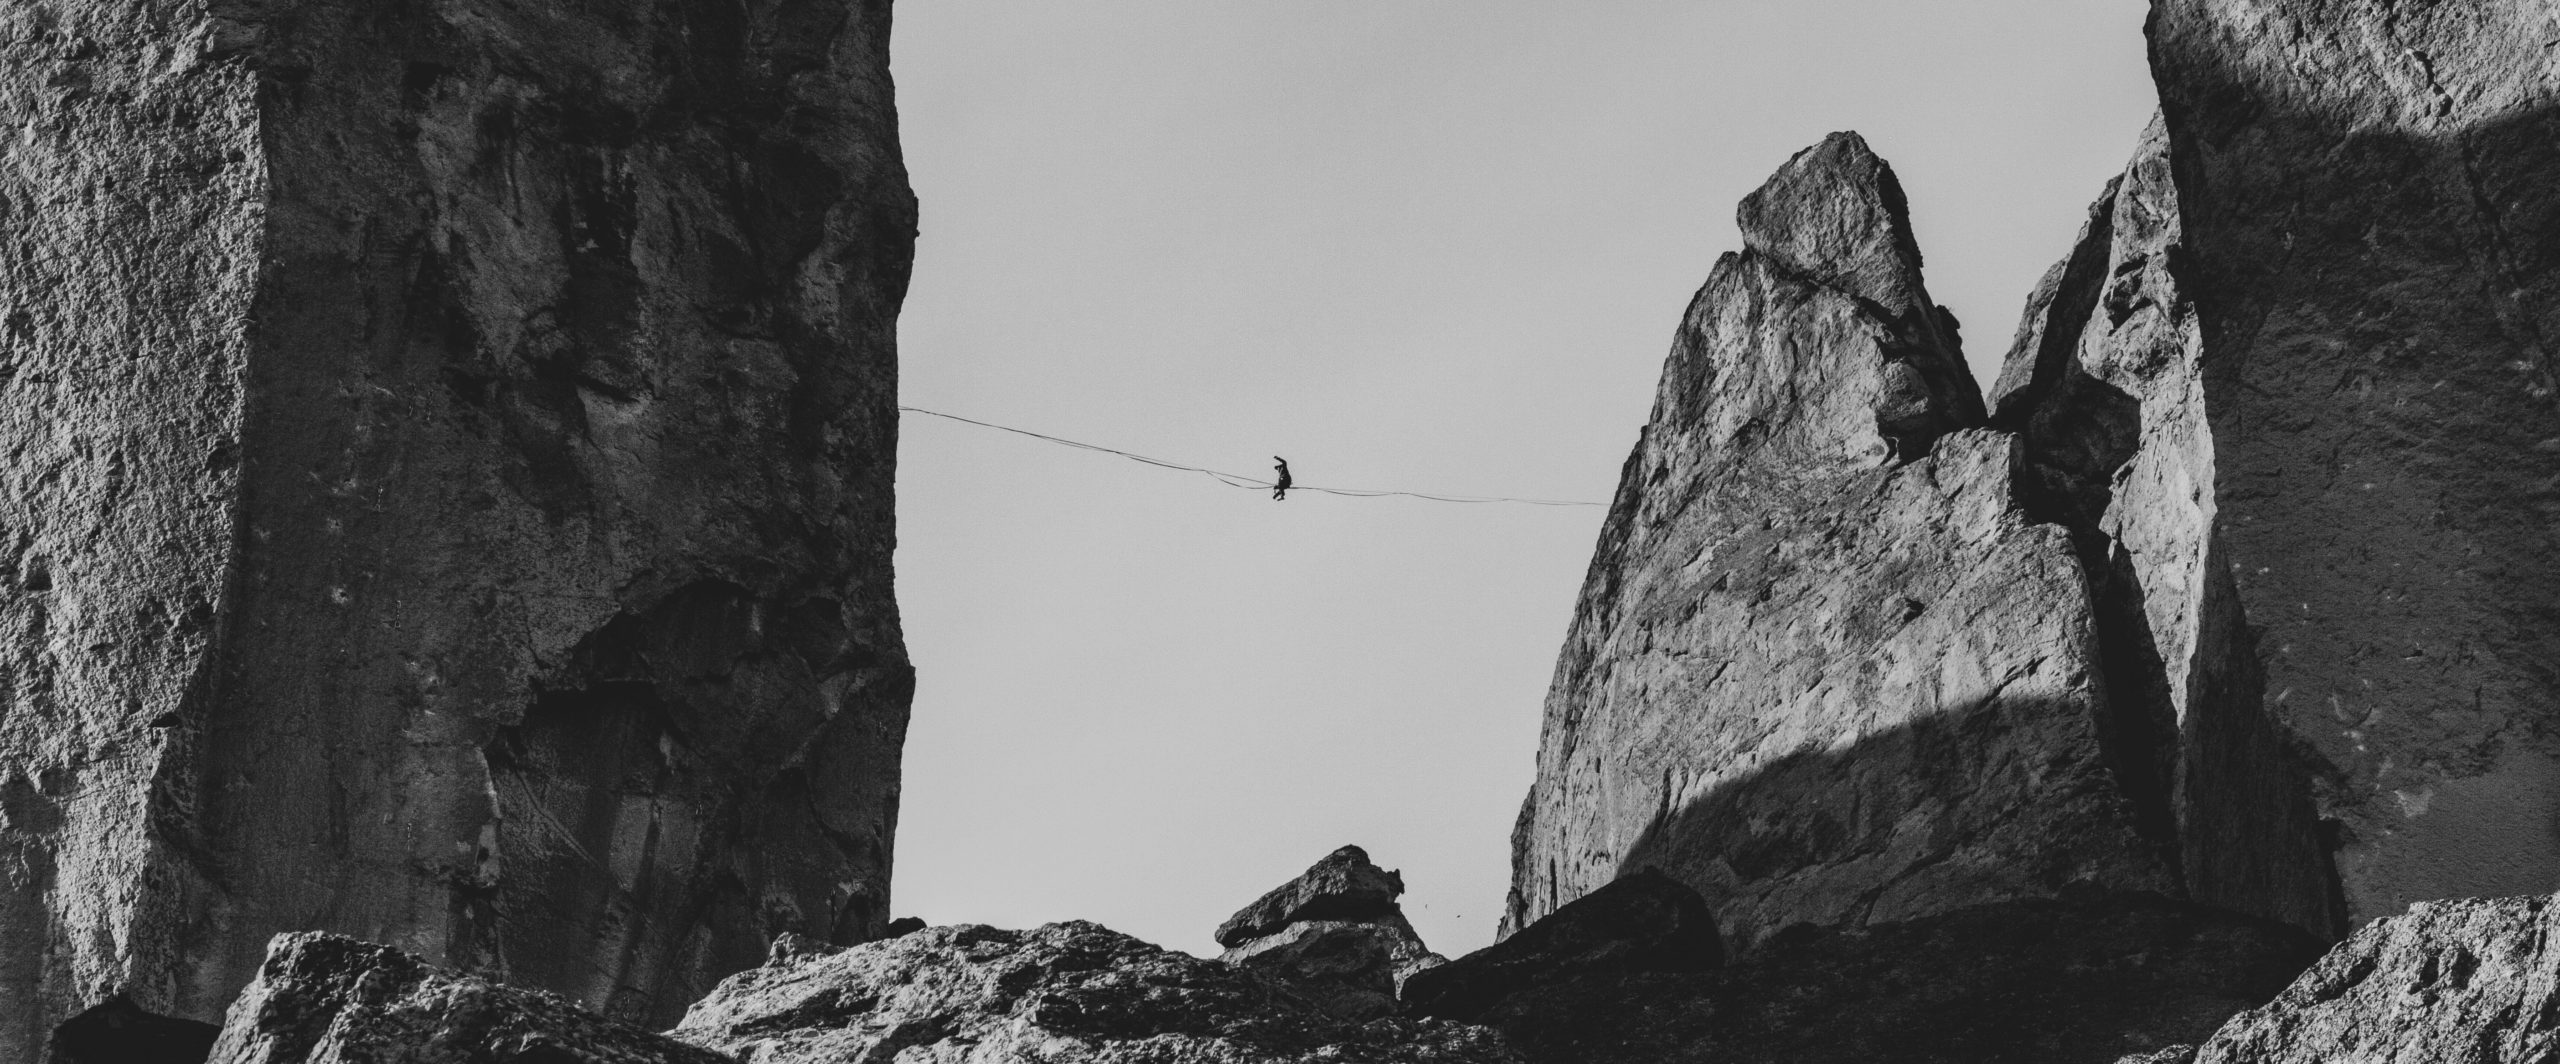 Walking a High Wire